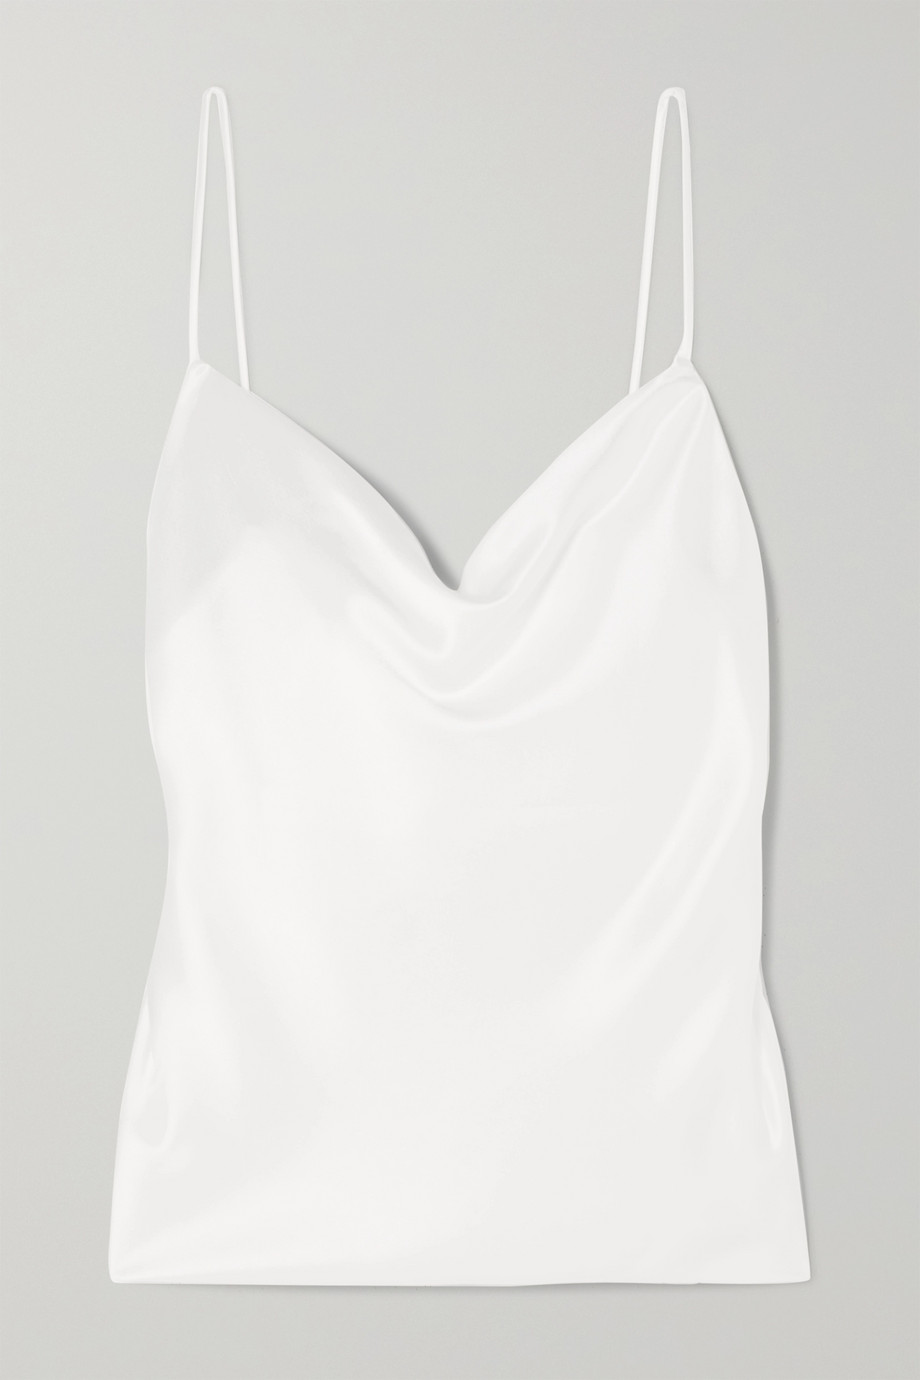 Galvan Whiteley satin camisole